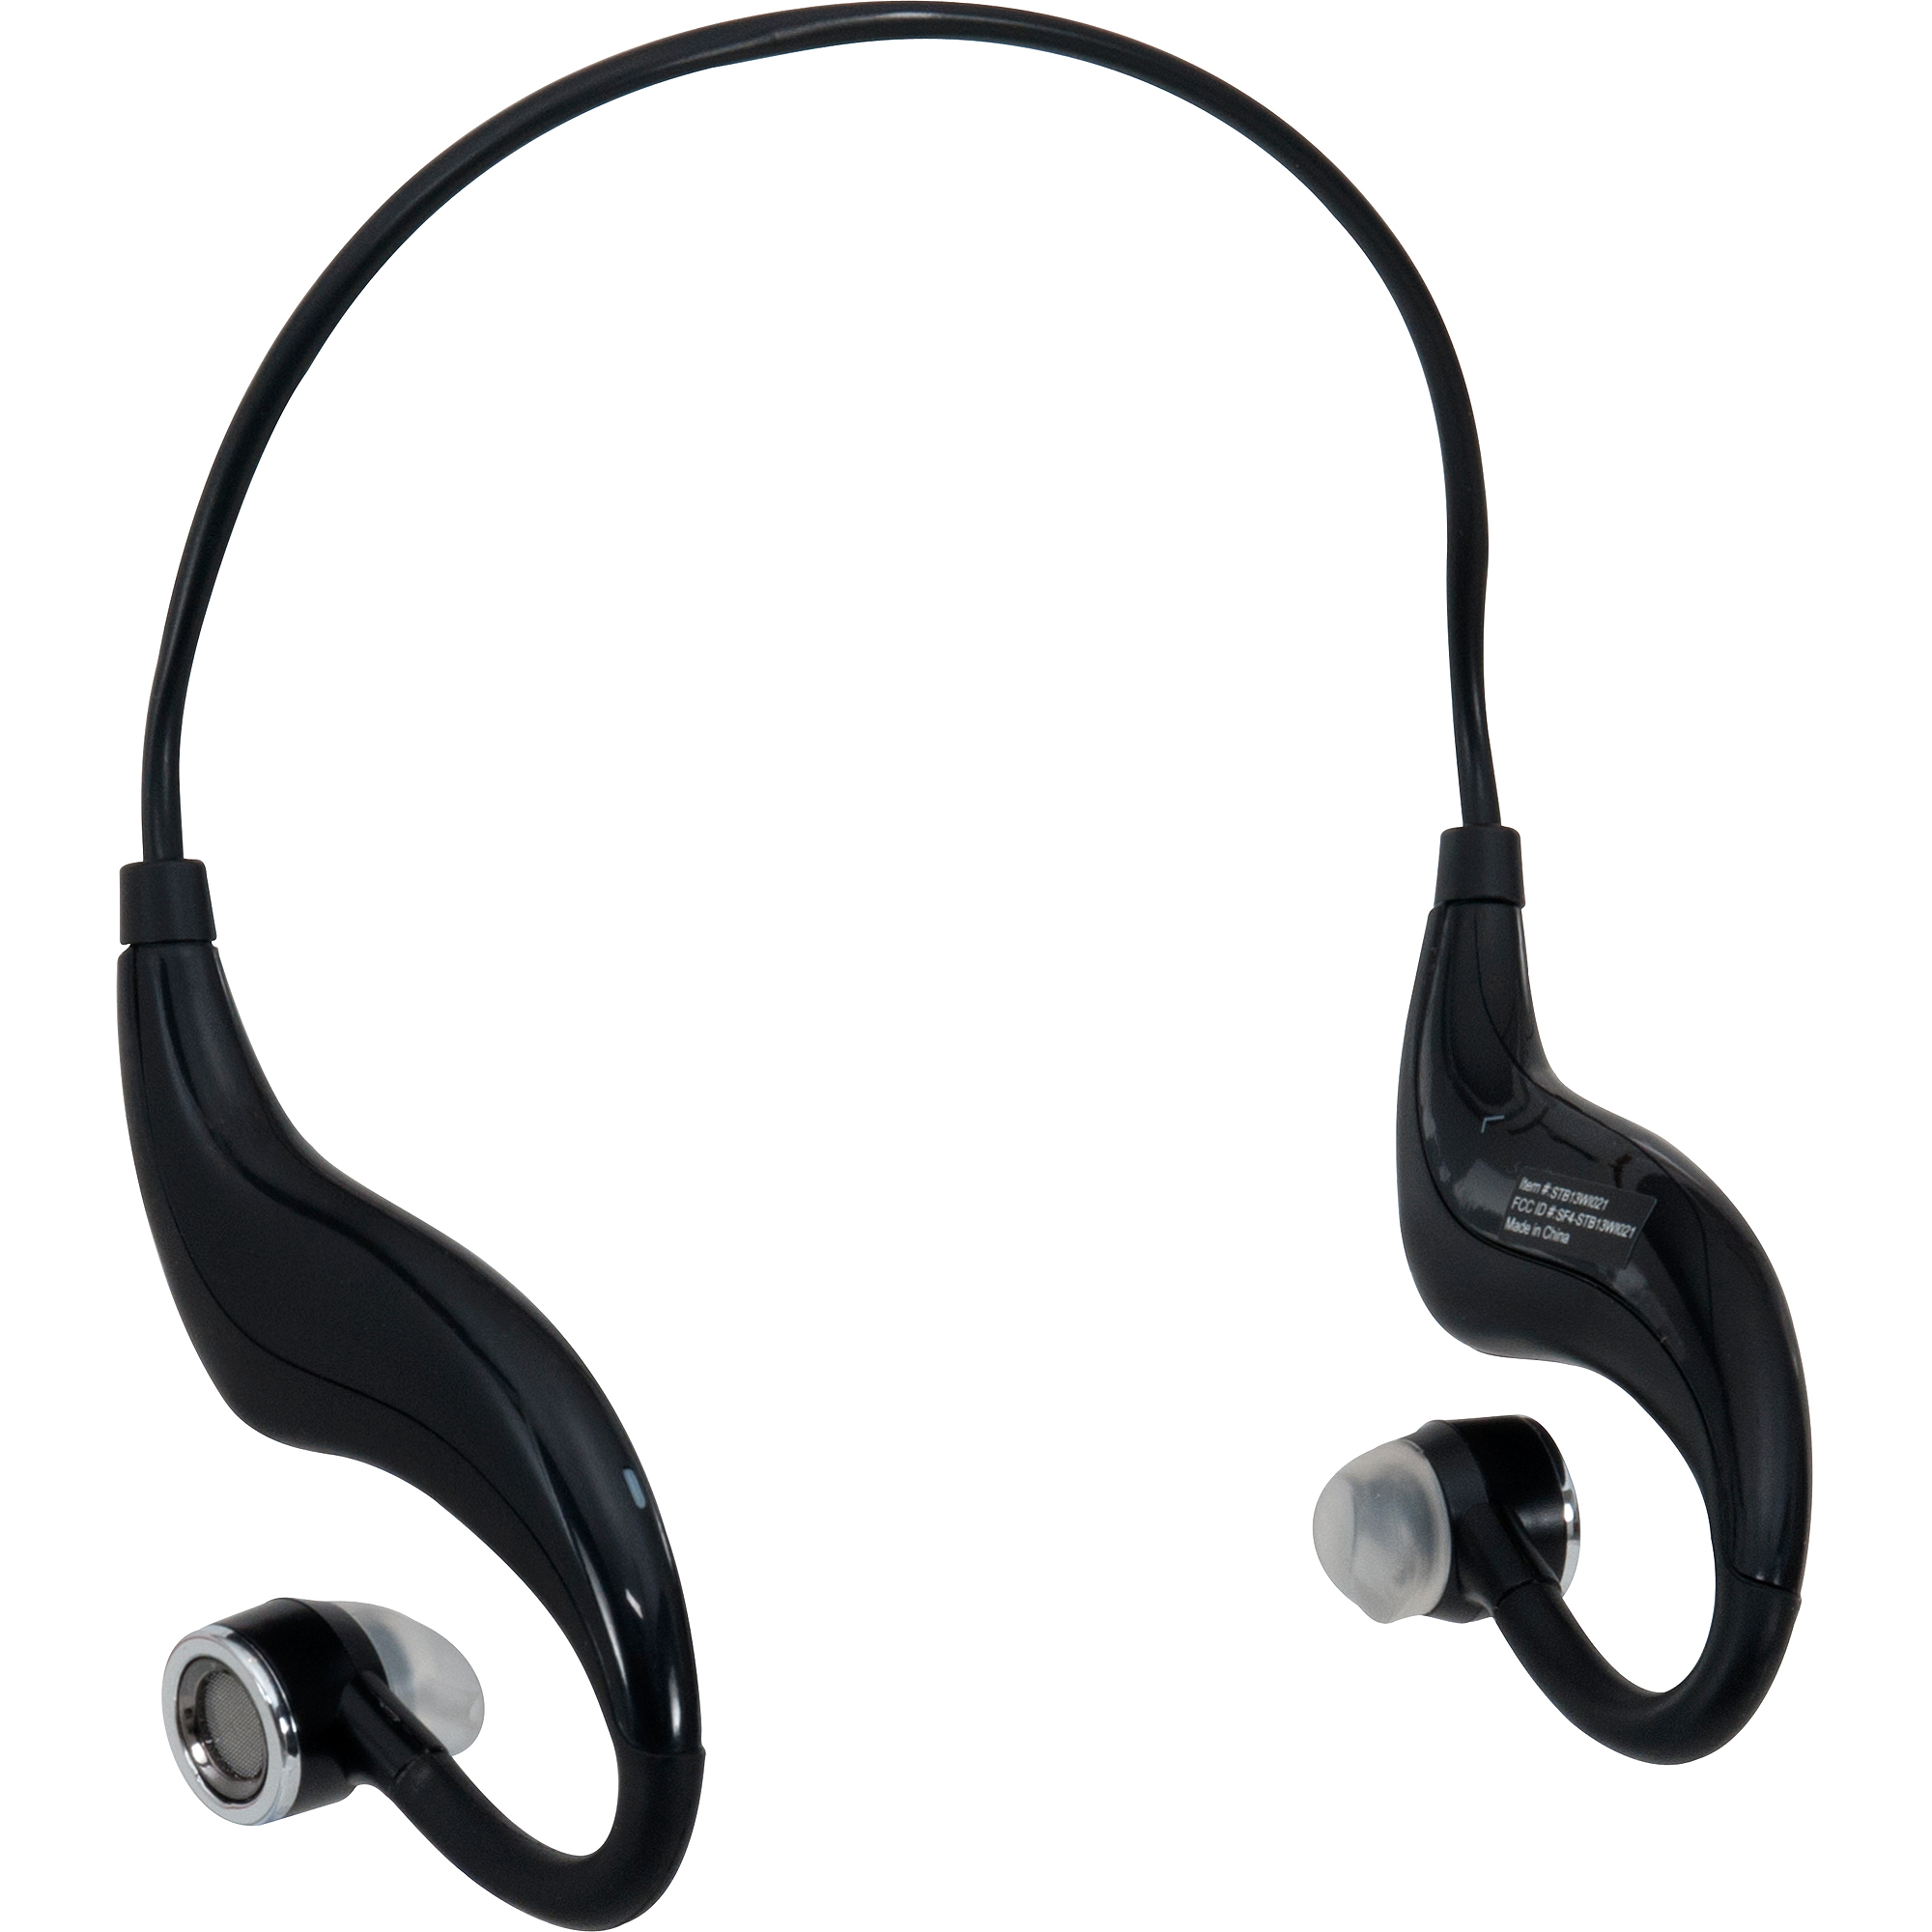 Stereo Bluetooth Wireless Headphones